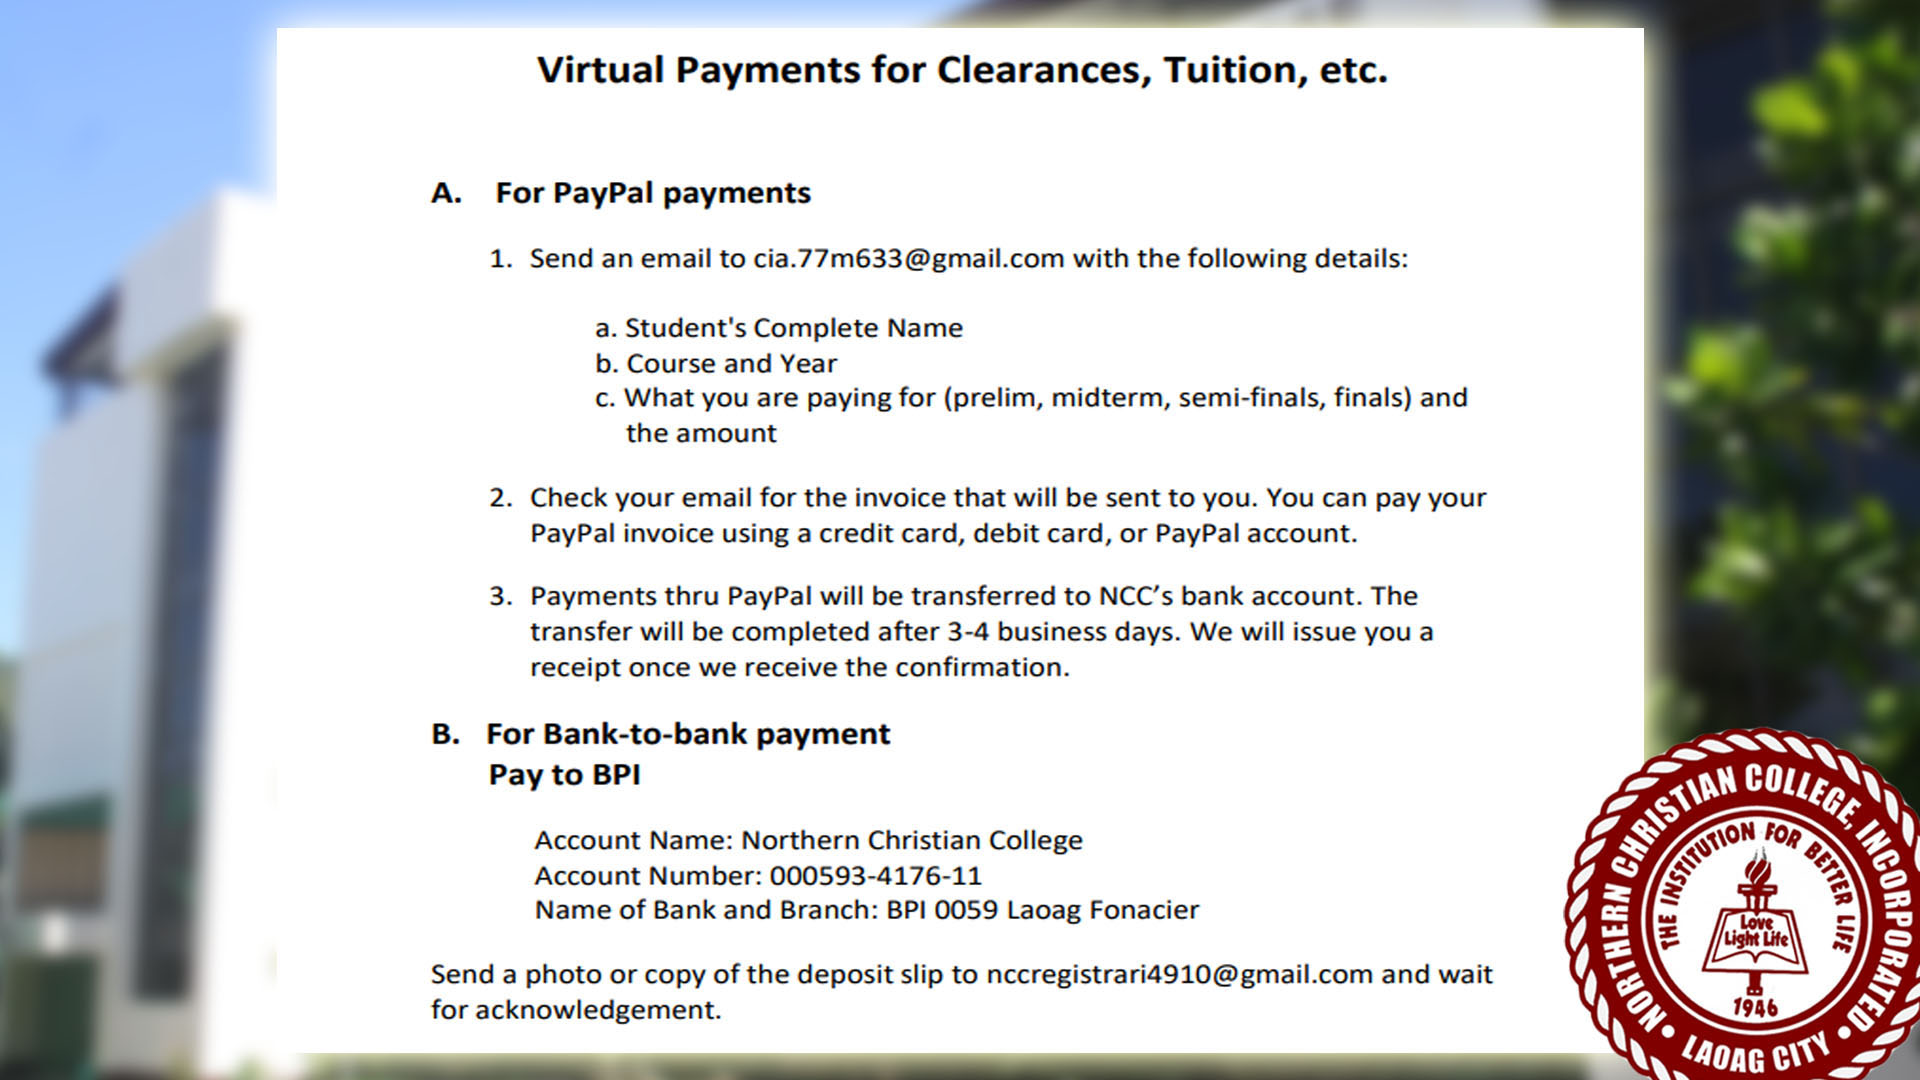 Virtual Payments for Clearances, Tuition, etc.